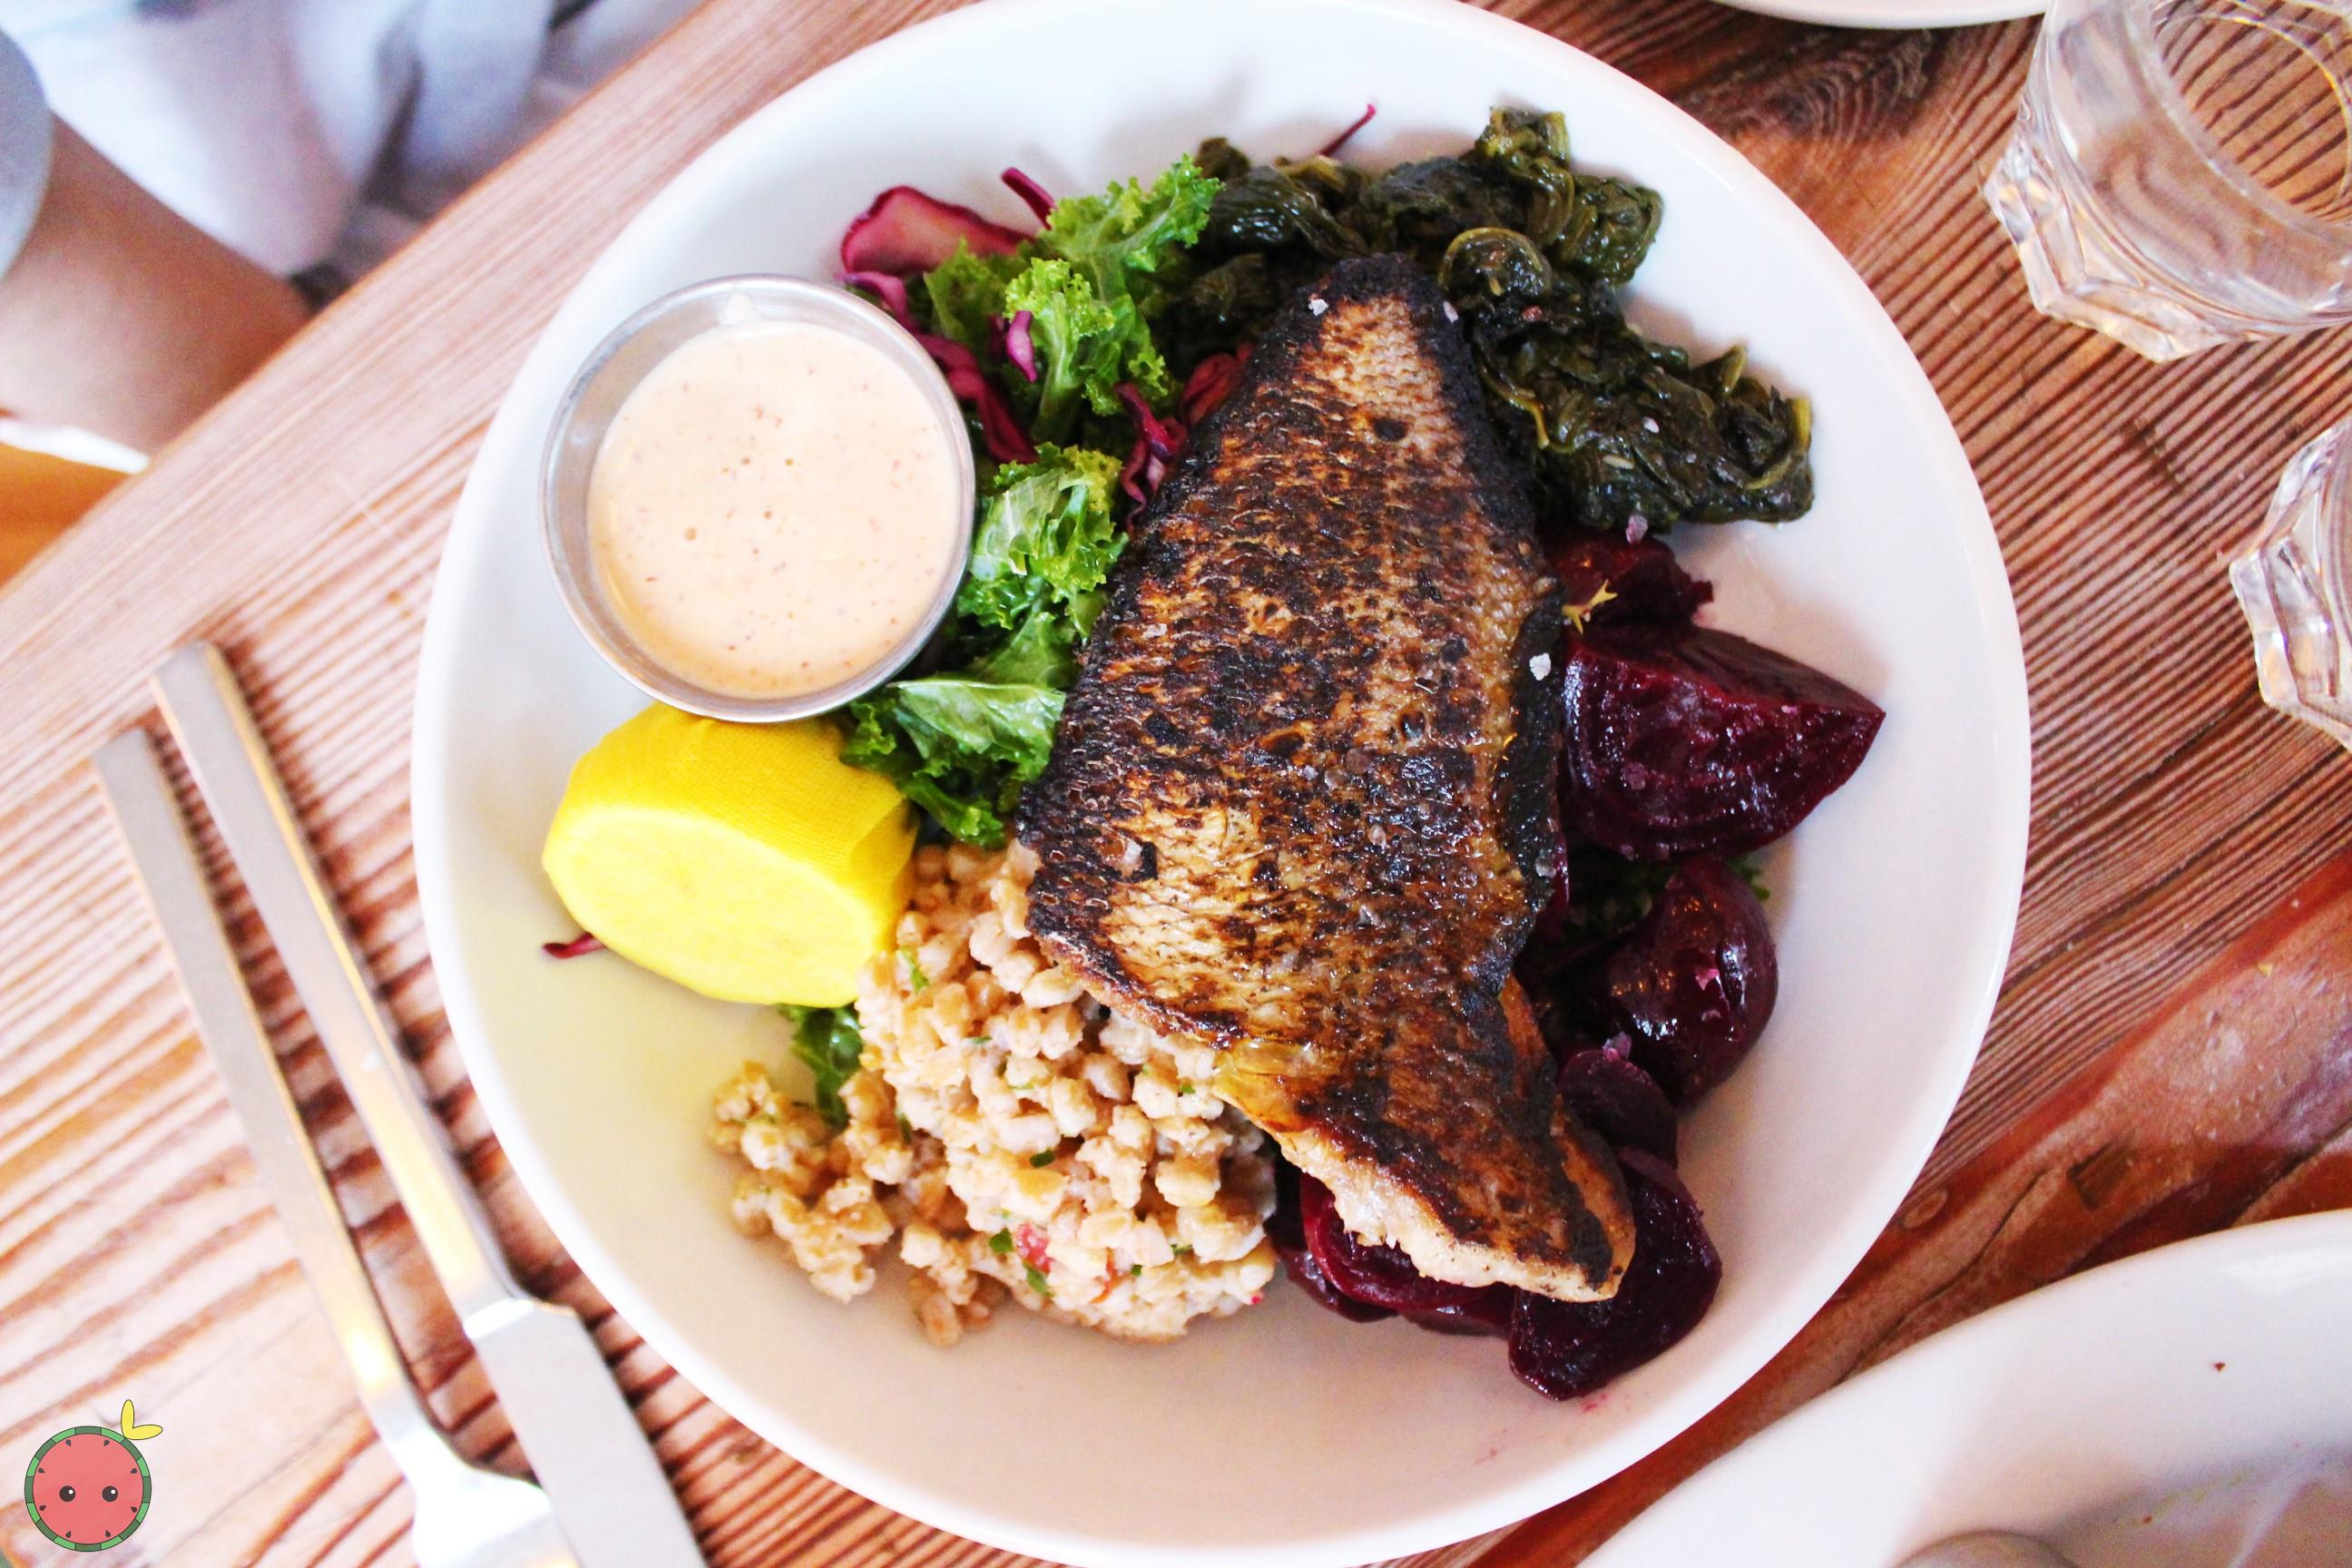 Porgy with harissa cashew sauce with three sides (sautéed spinach with garlic, farro with olives & c